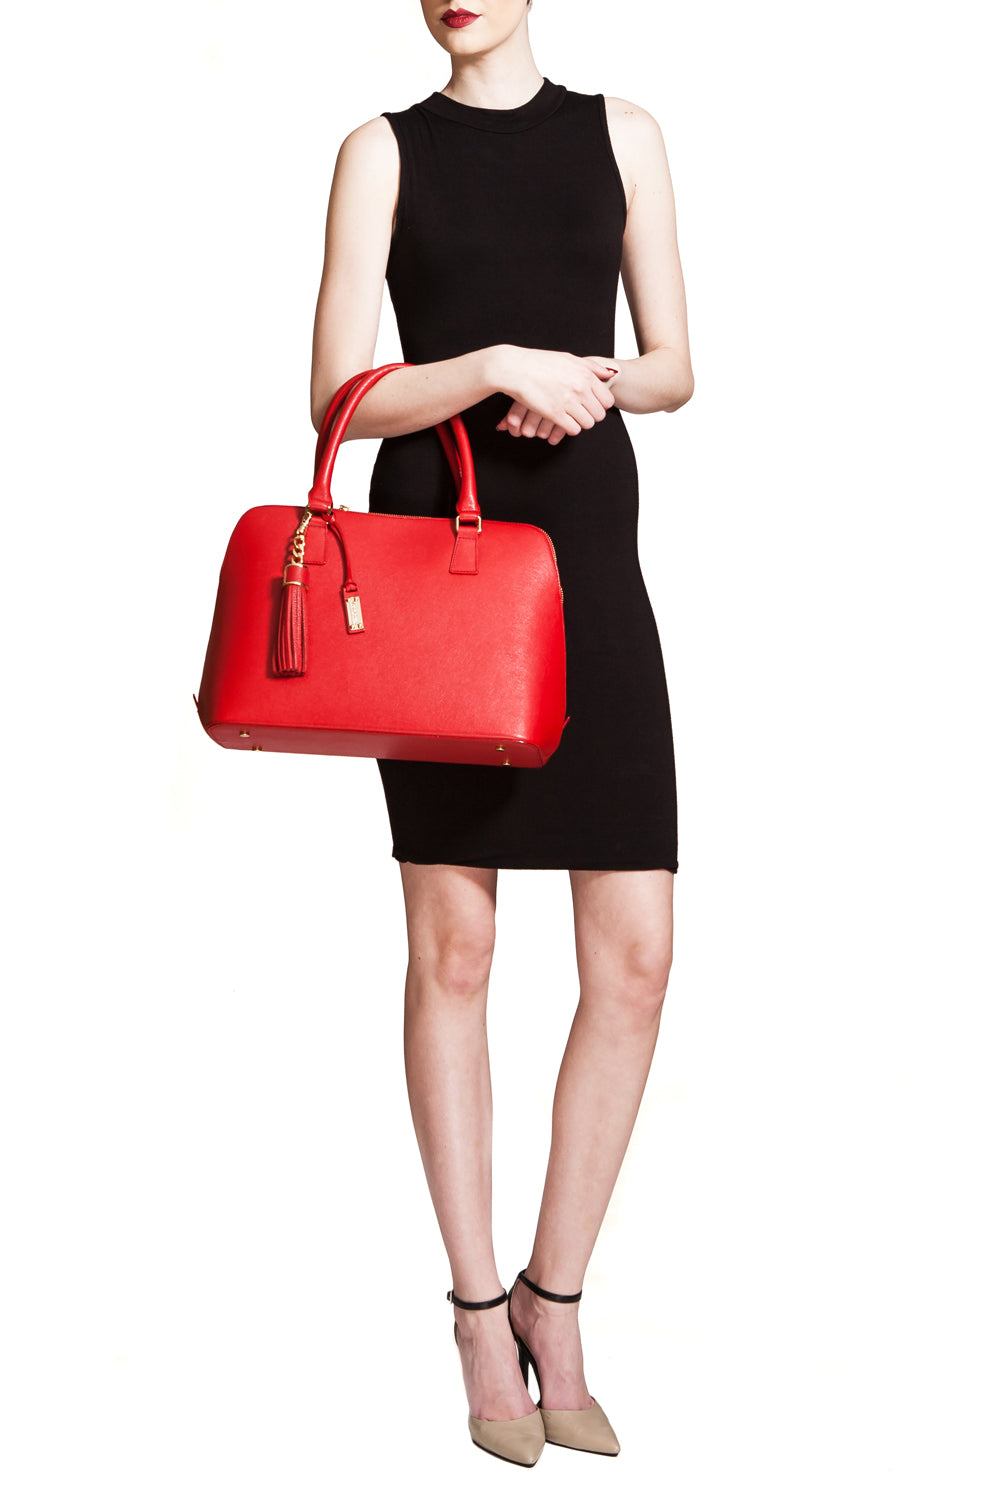 Red Saffiano Leather 'Watson' Tote | Mel Boteri | Model